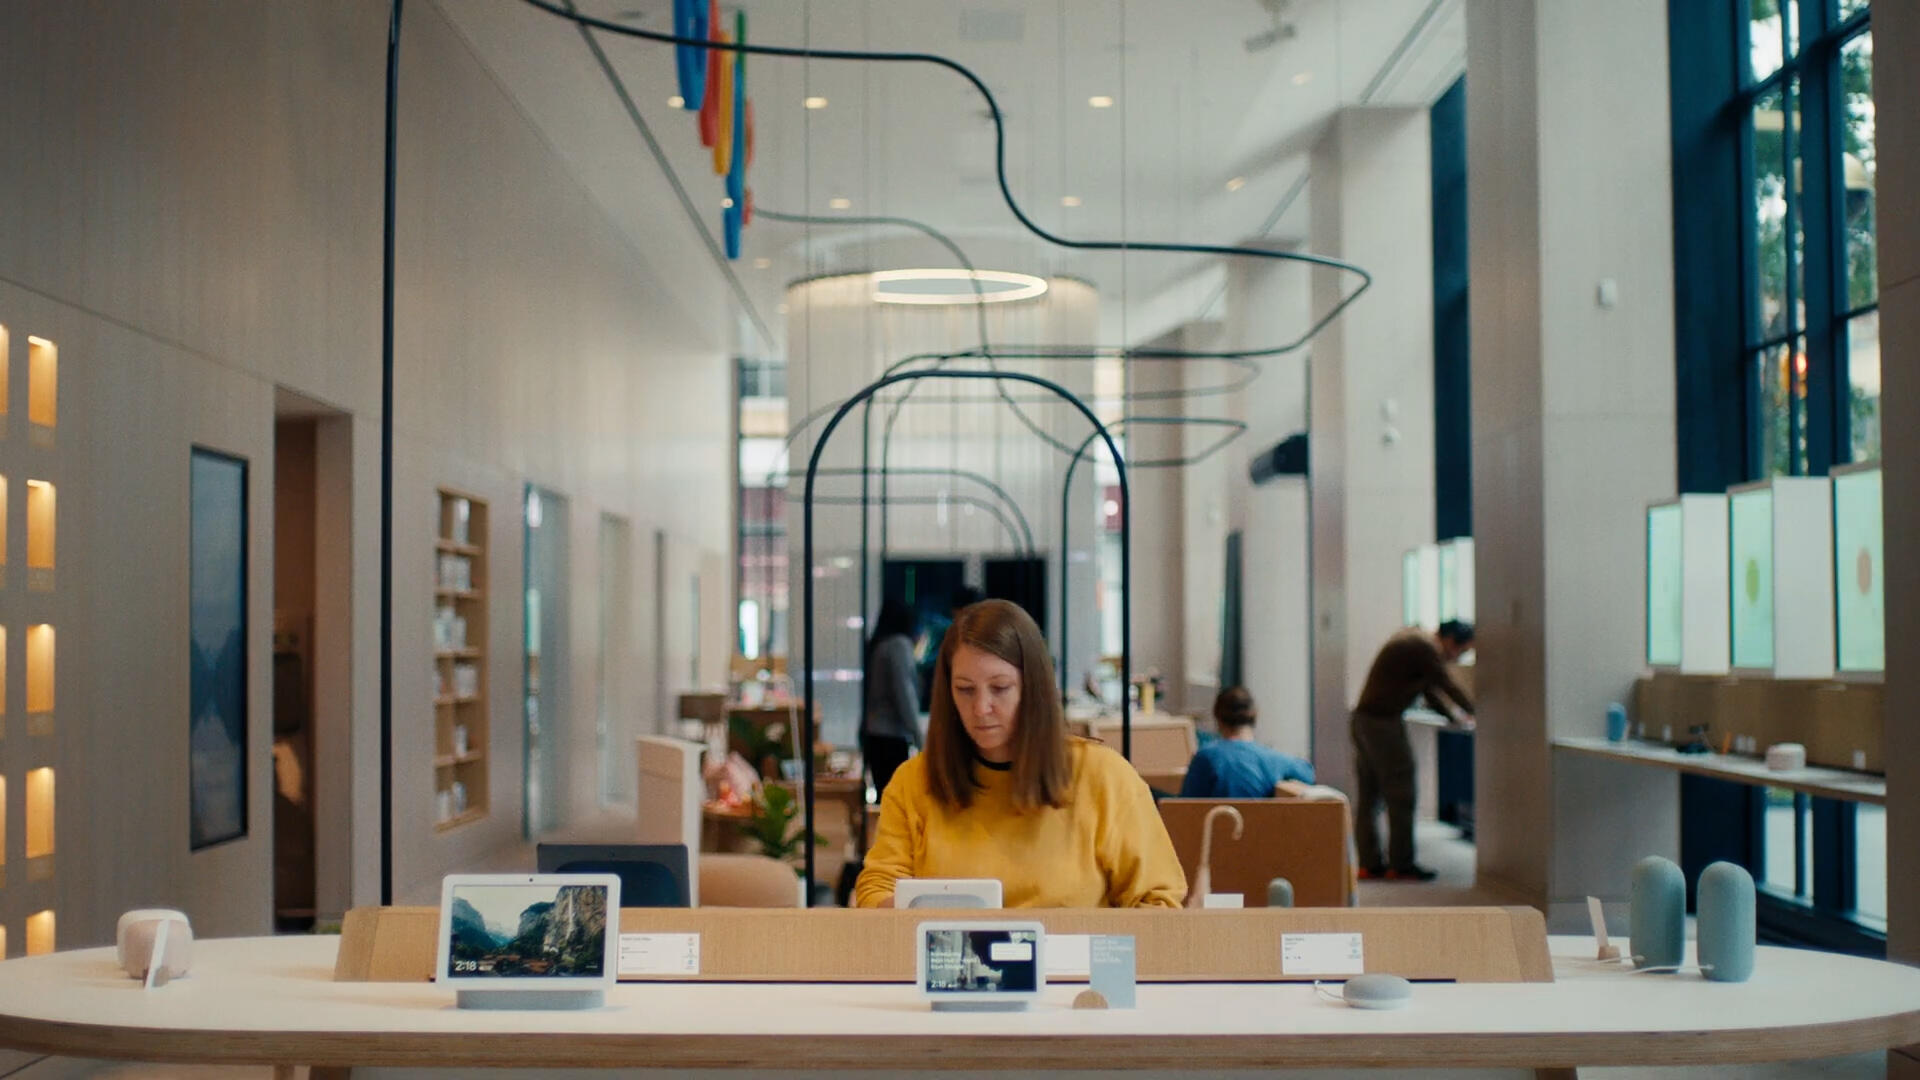 In today's top stories, Google launches its first retail store, Facebook announces ad testing in Oculus VR and MacKenzie Scott says she's making (another) huge round of charitable donations.